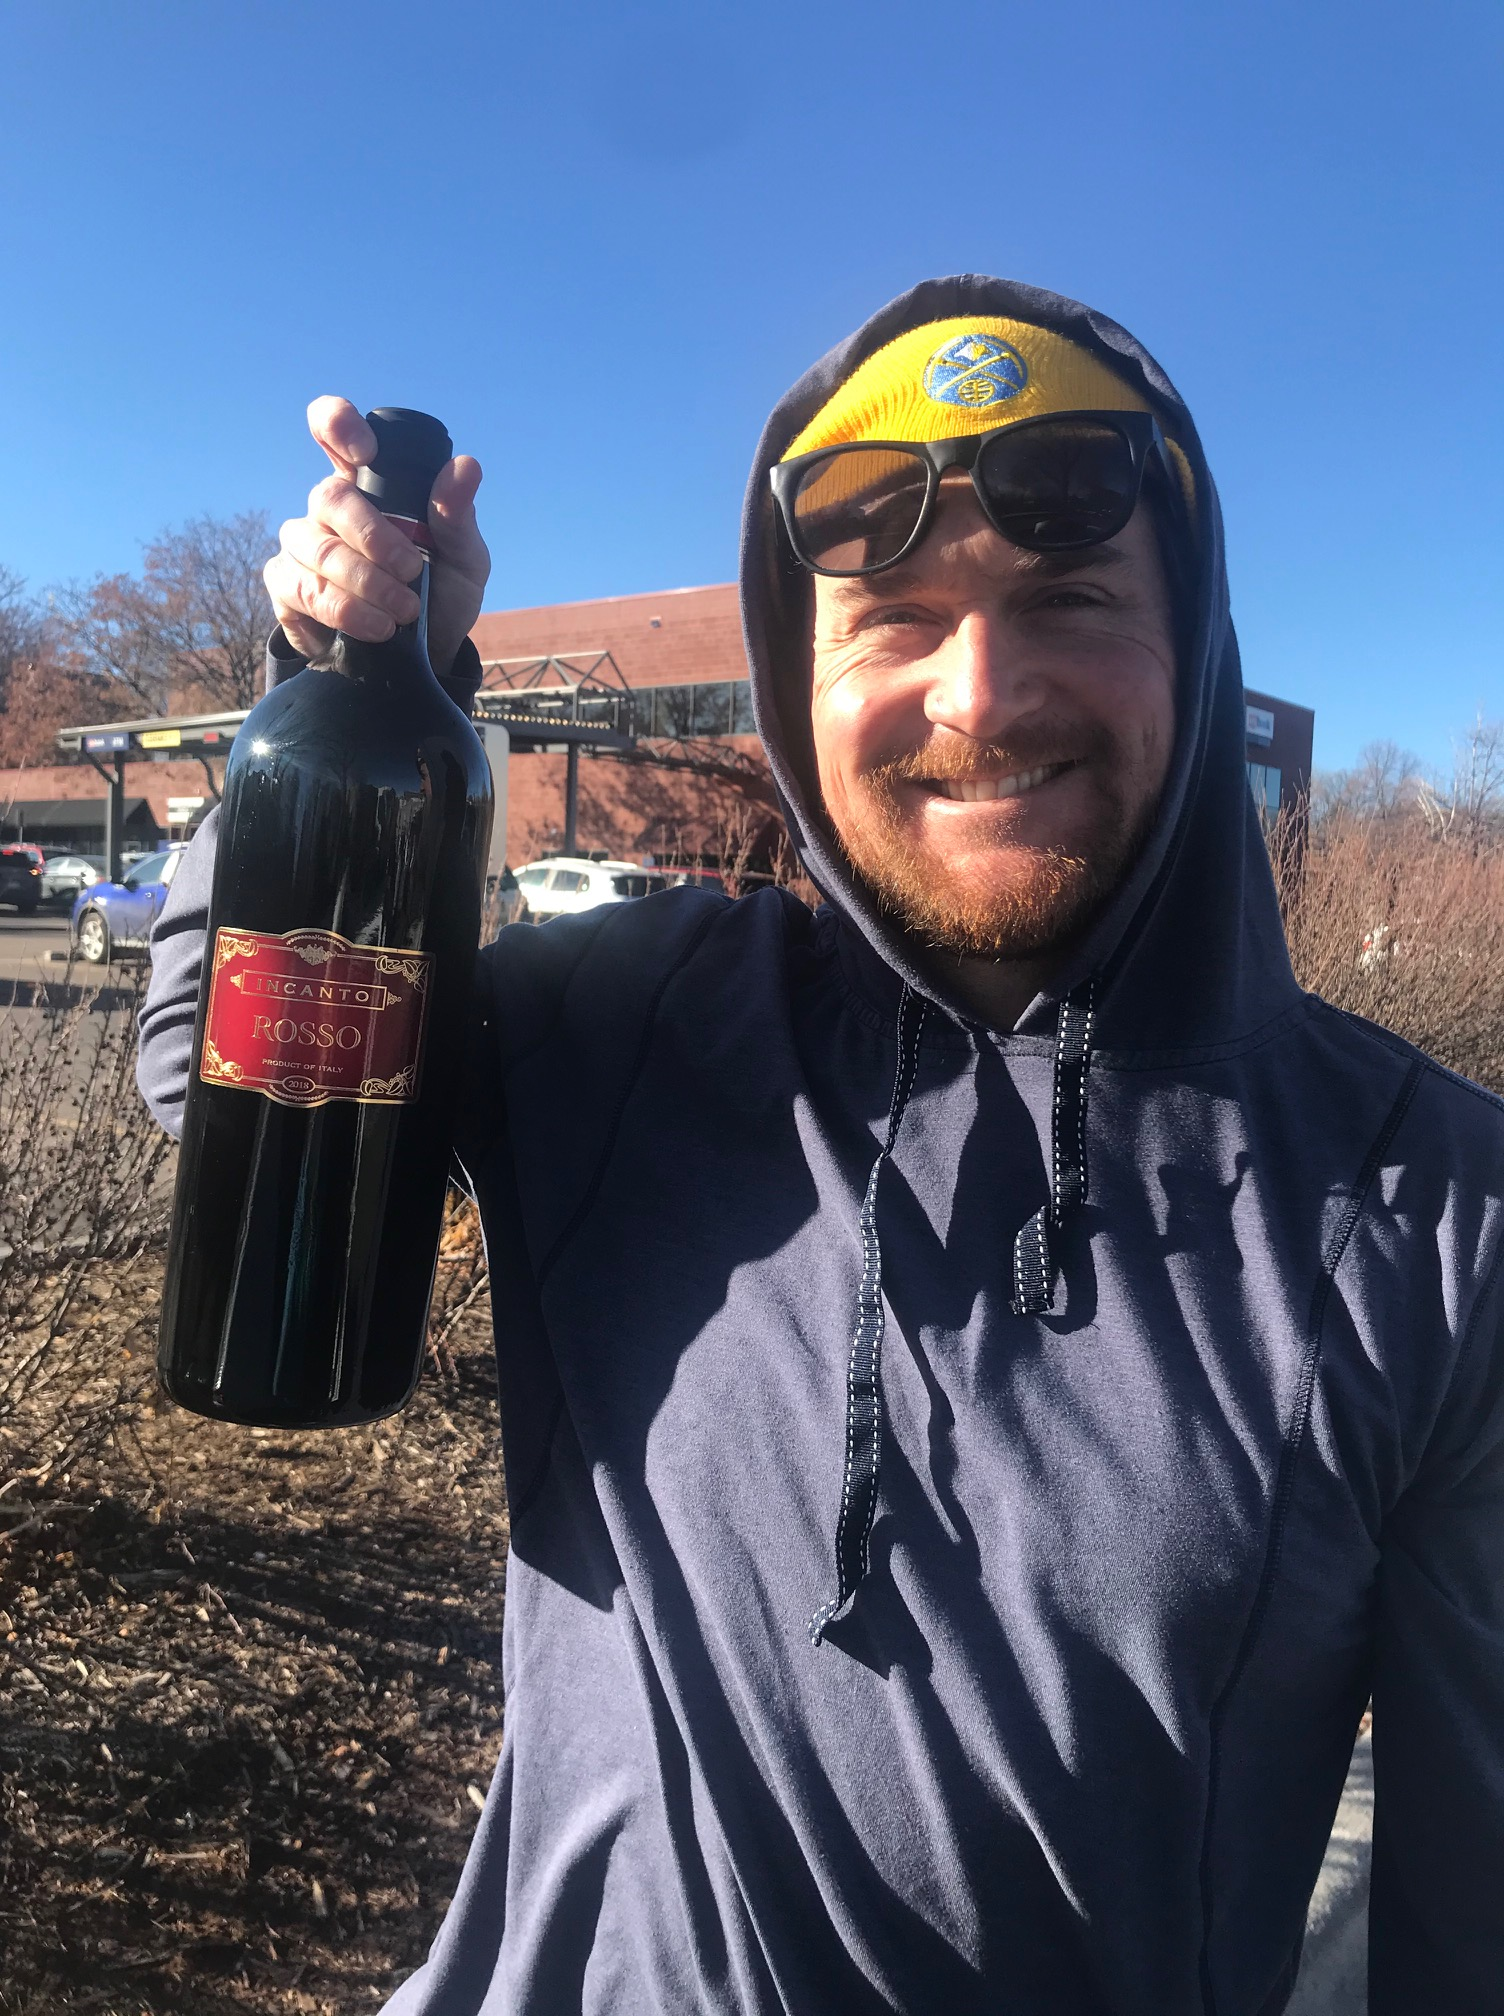 Tim with large wine from Trader Joe's